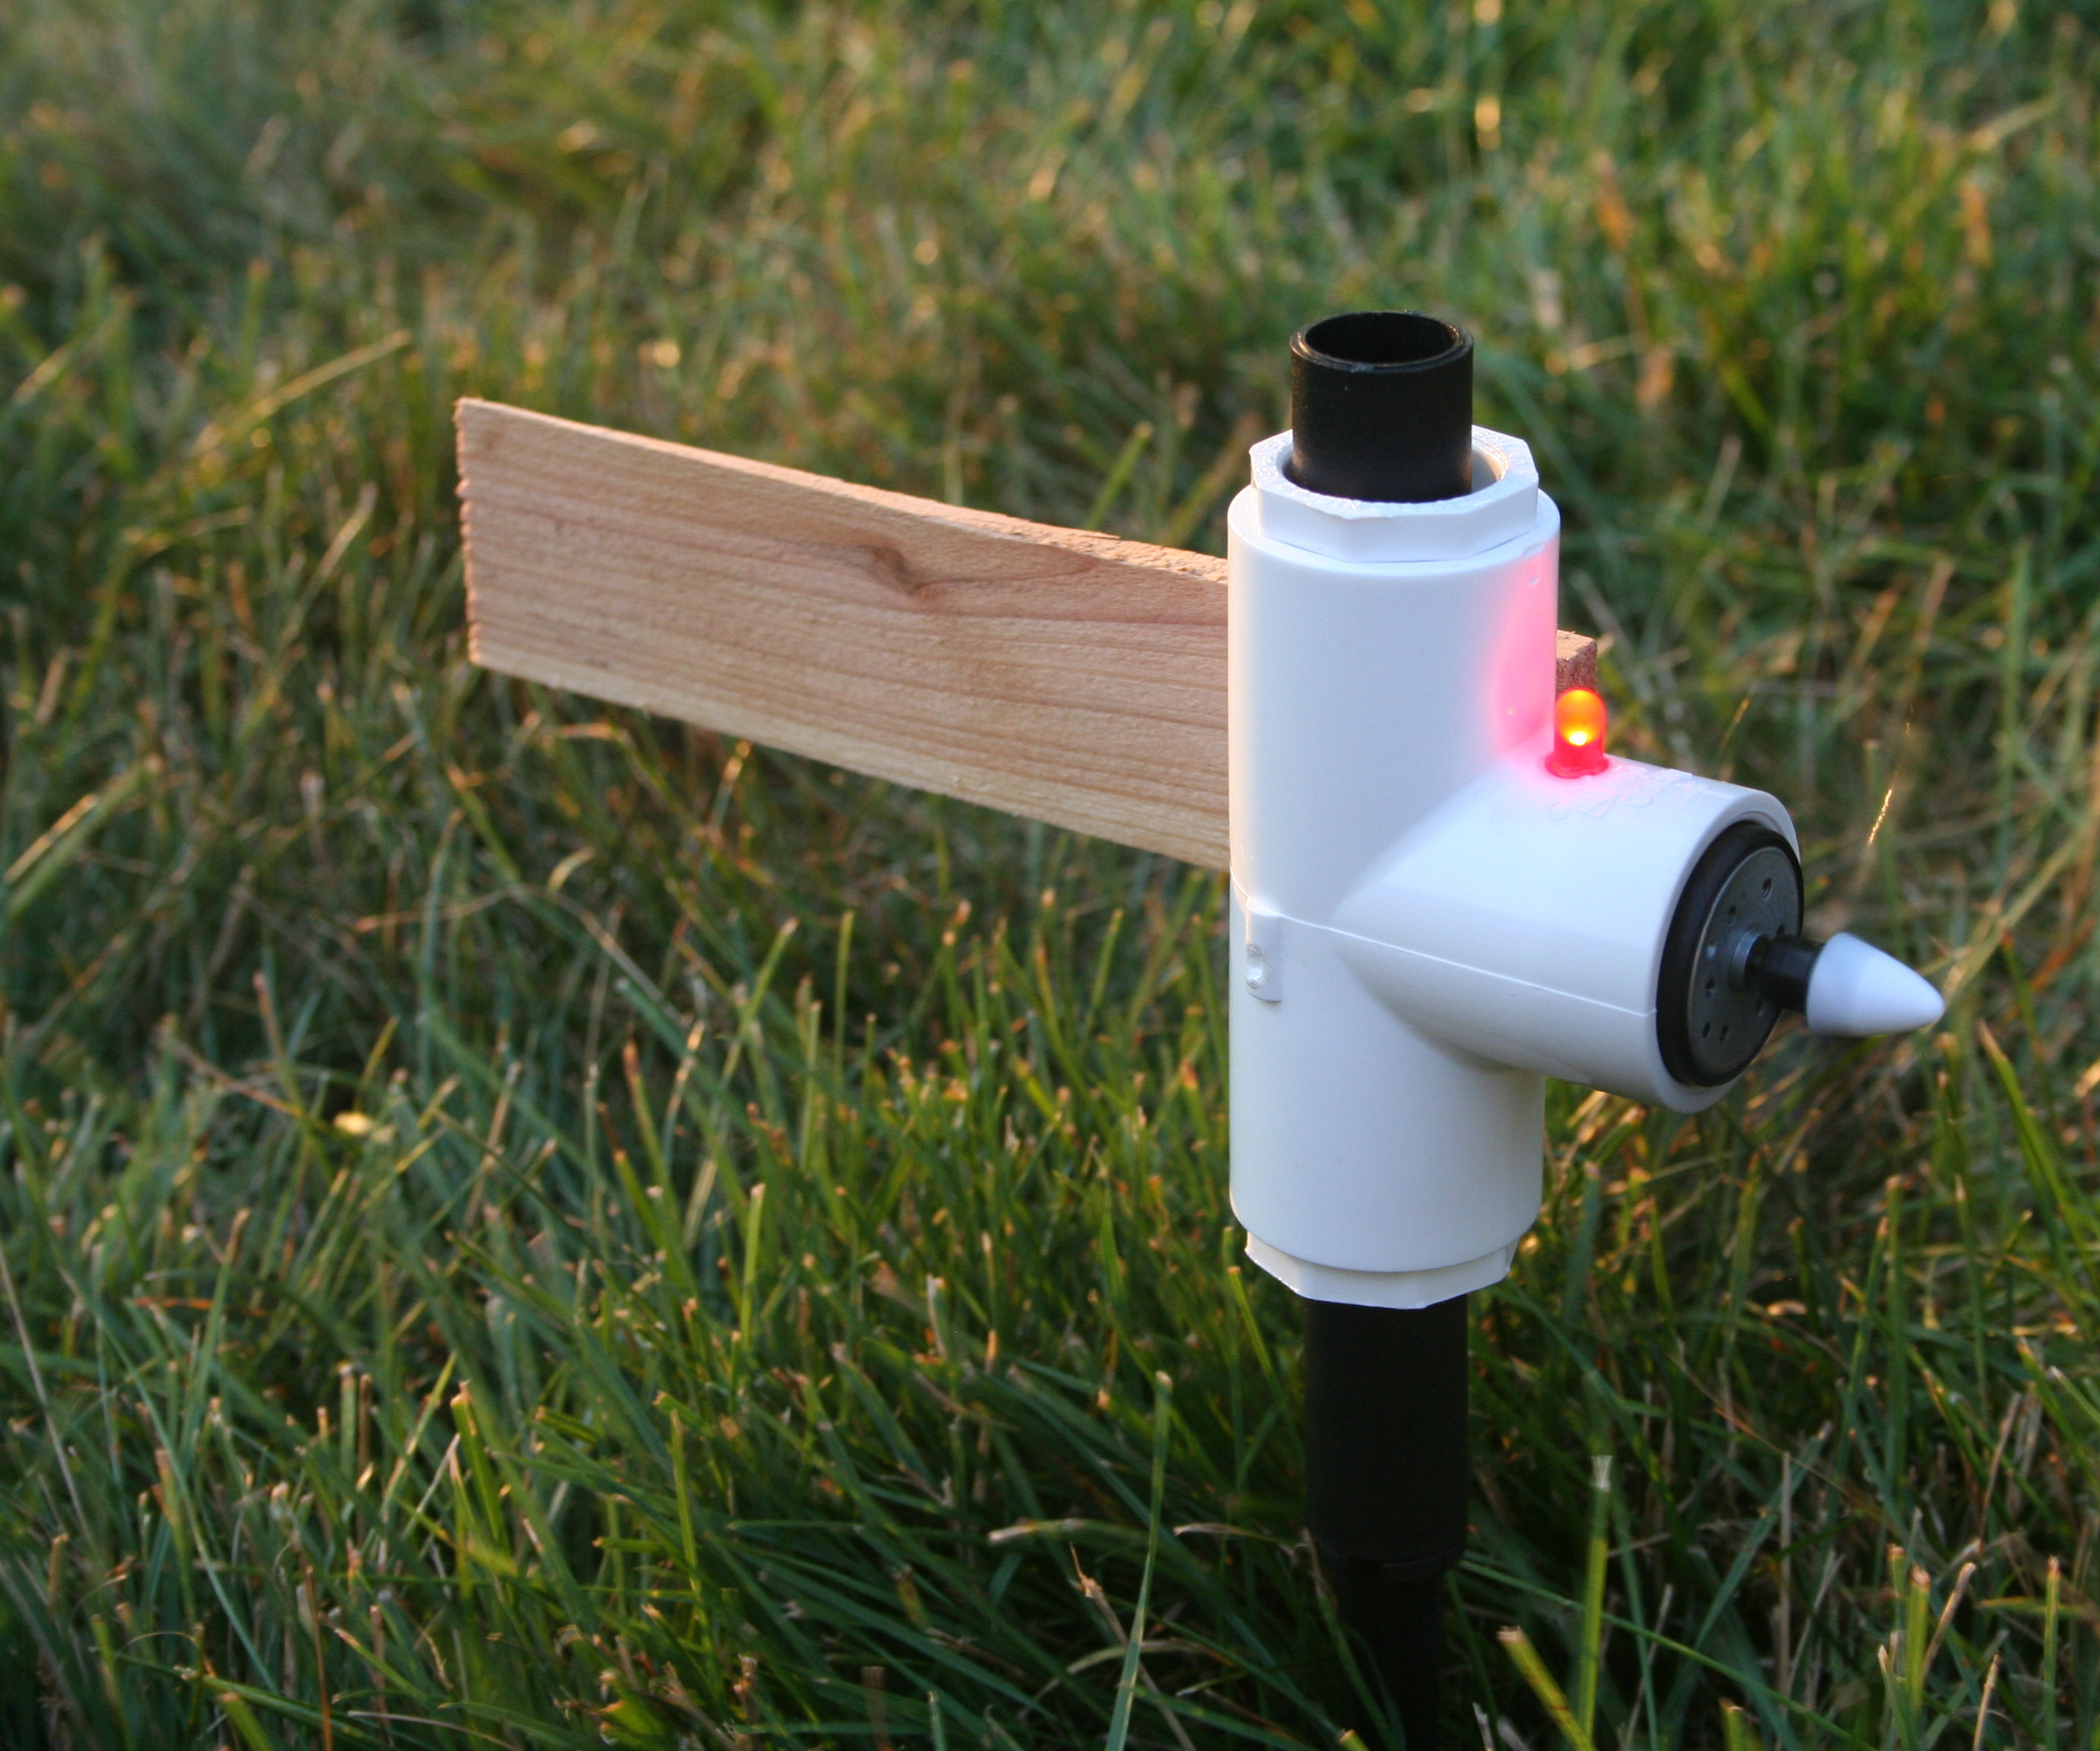 Inexpensive Mini Turbine